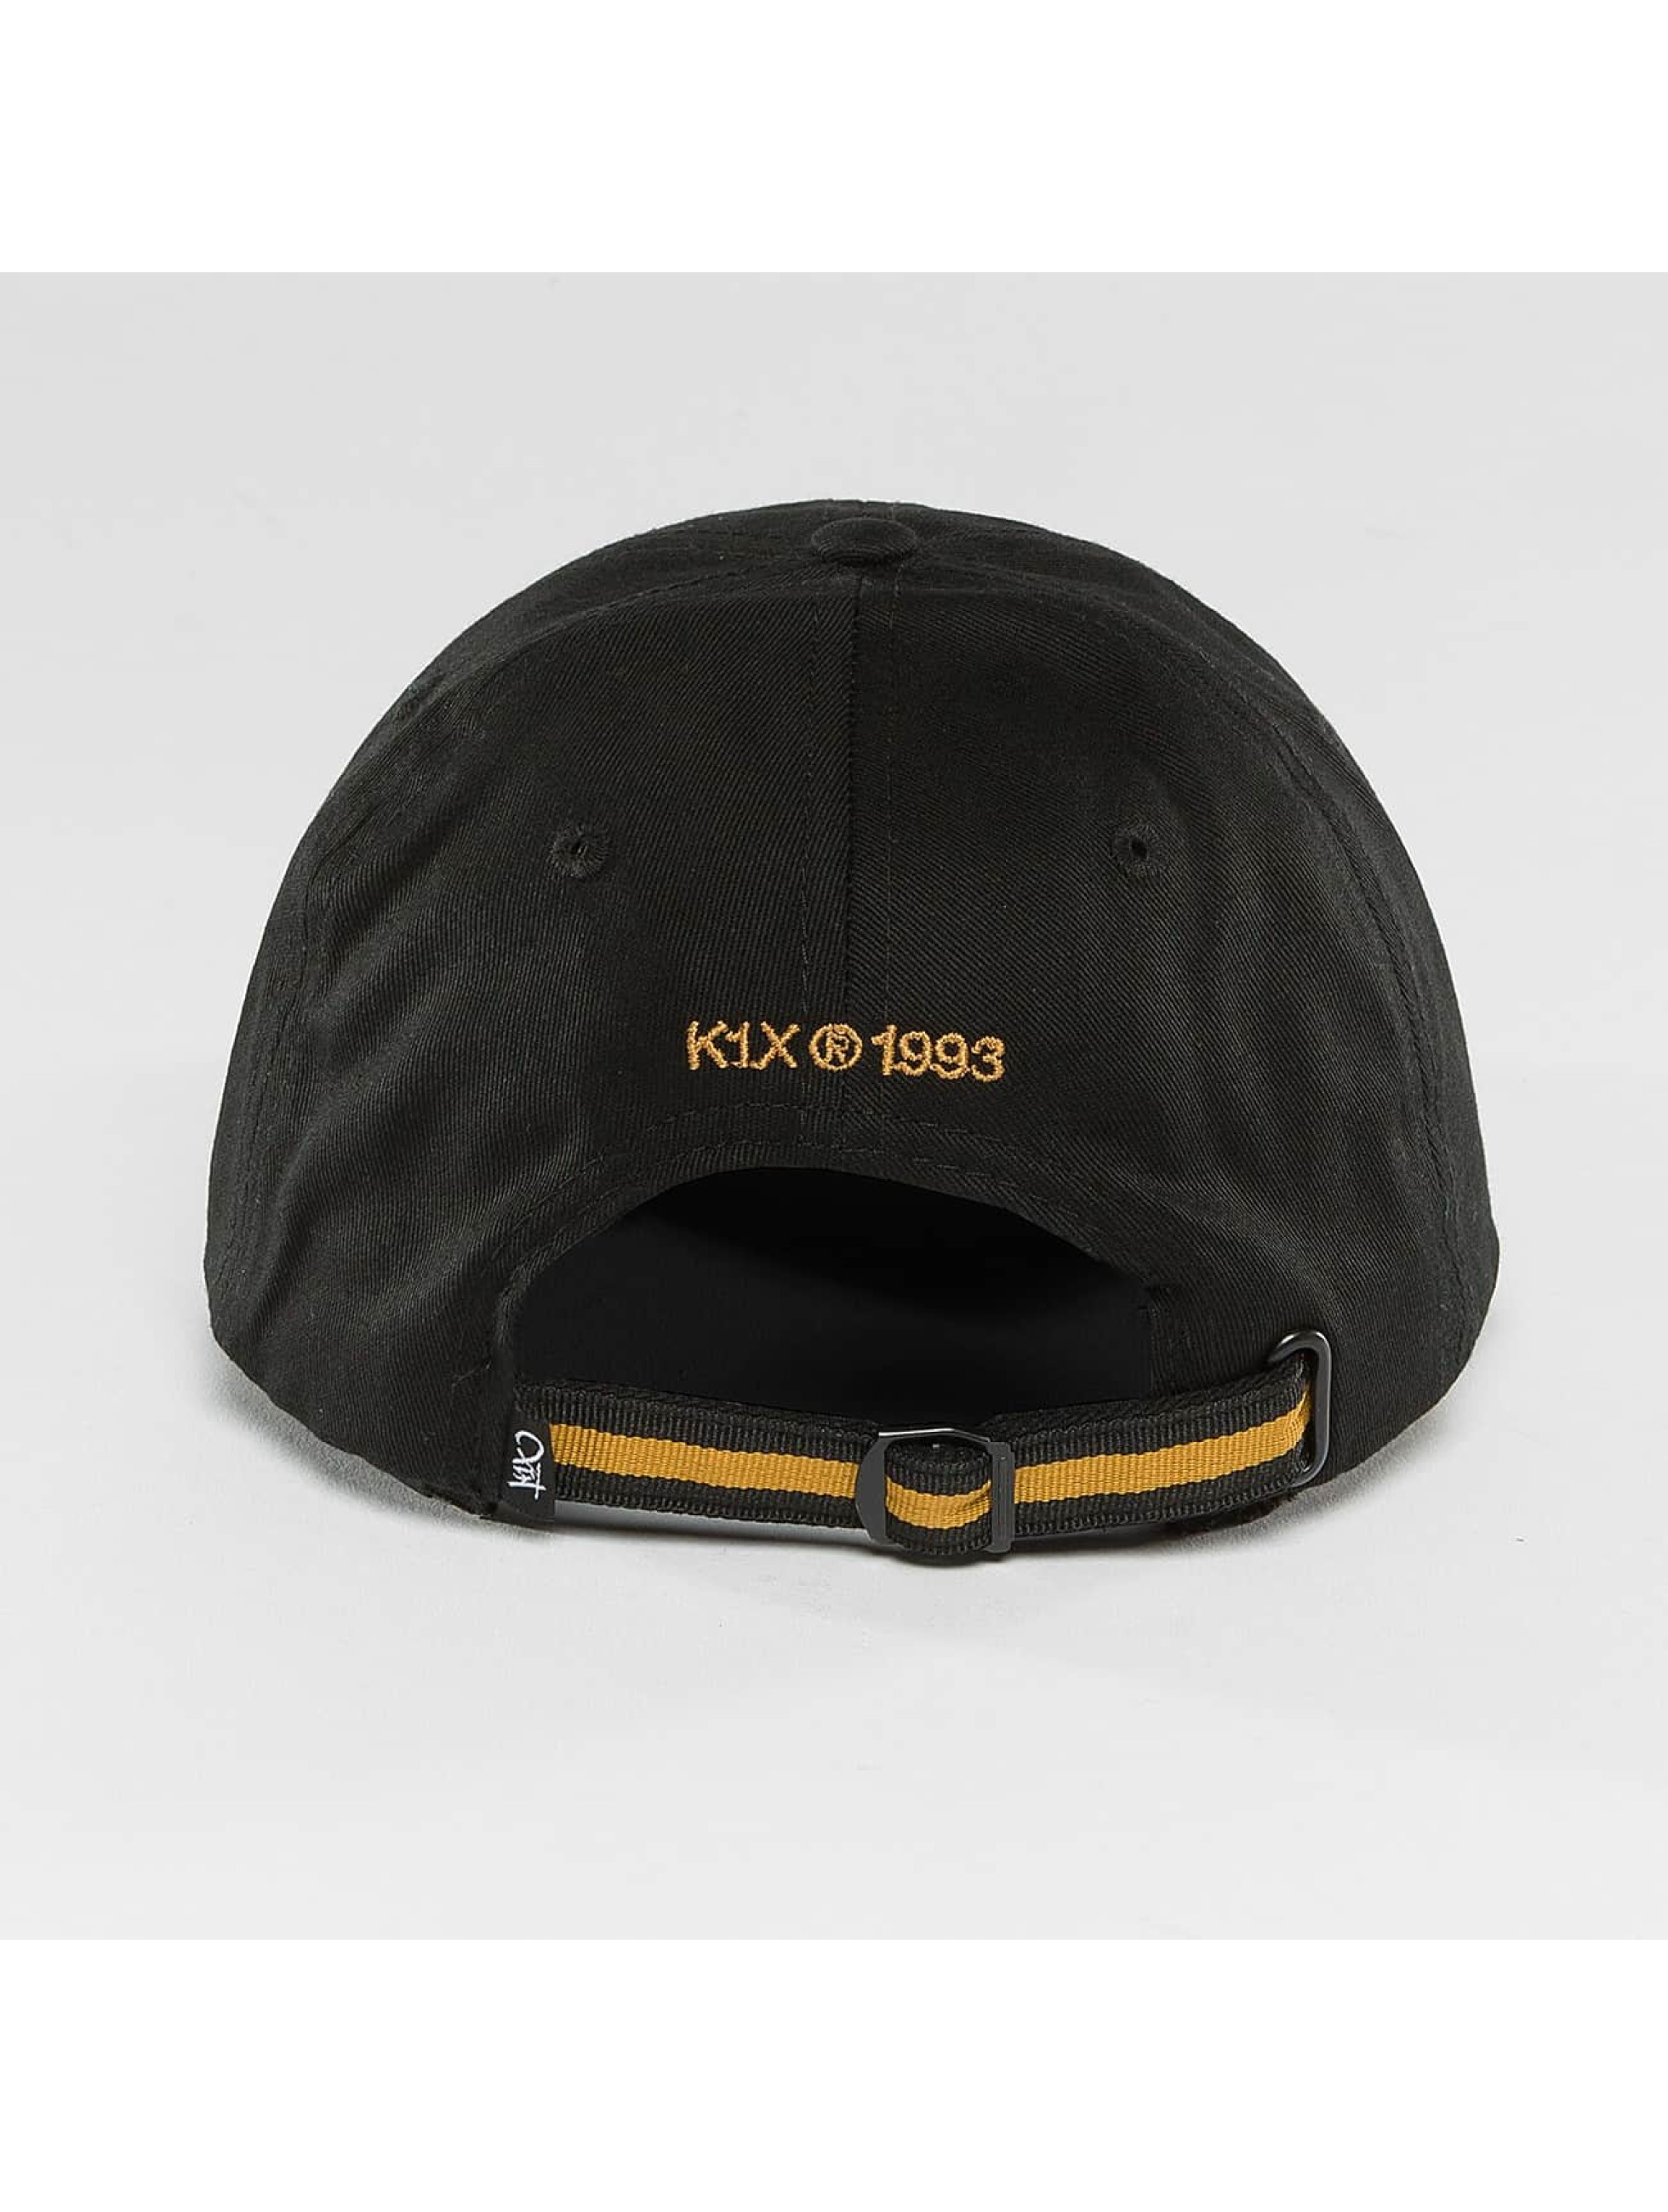 K1X Snapback Cap Play Hard Basketball Sports black